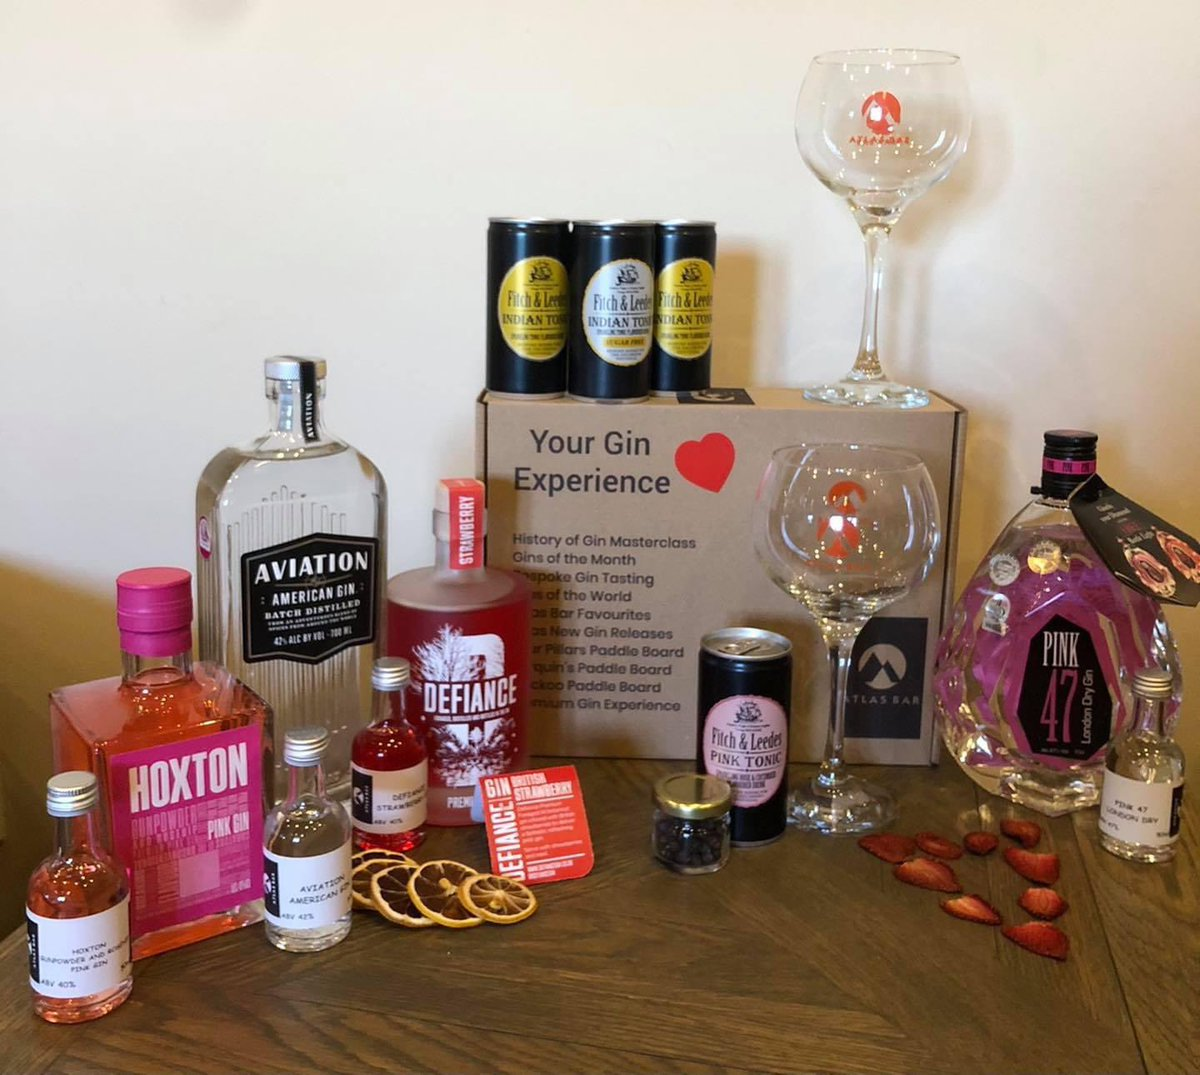 As #ValentinesDay approaches, #Manchester, why not give the gift of #gin? #StillServingMCR #ValentinesDayGifts #giftideas #VirtualEvents